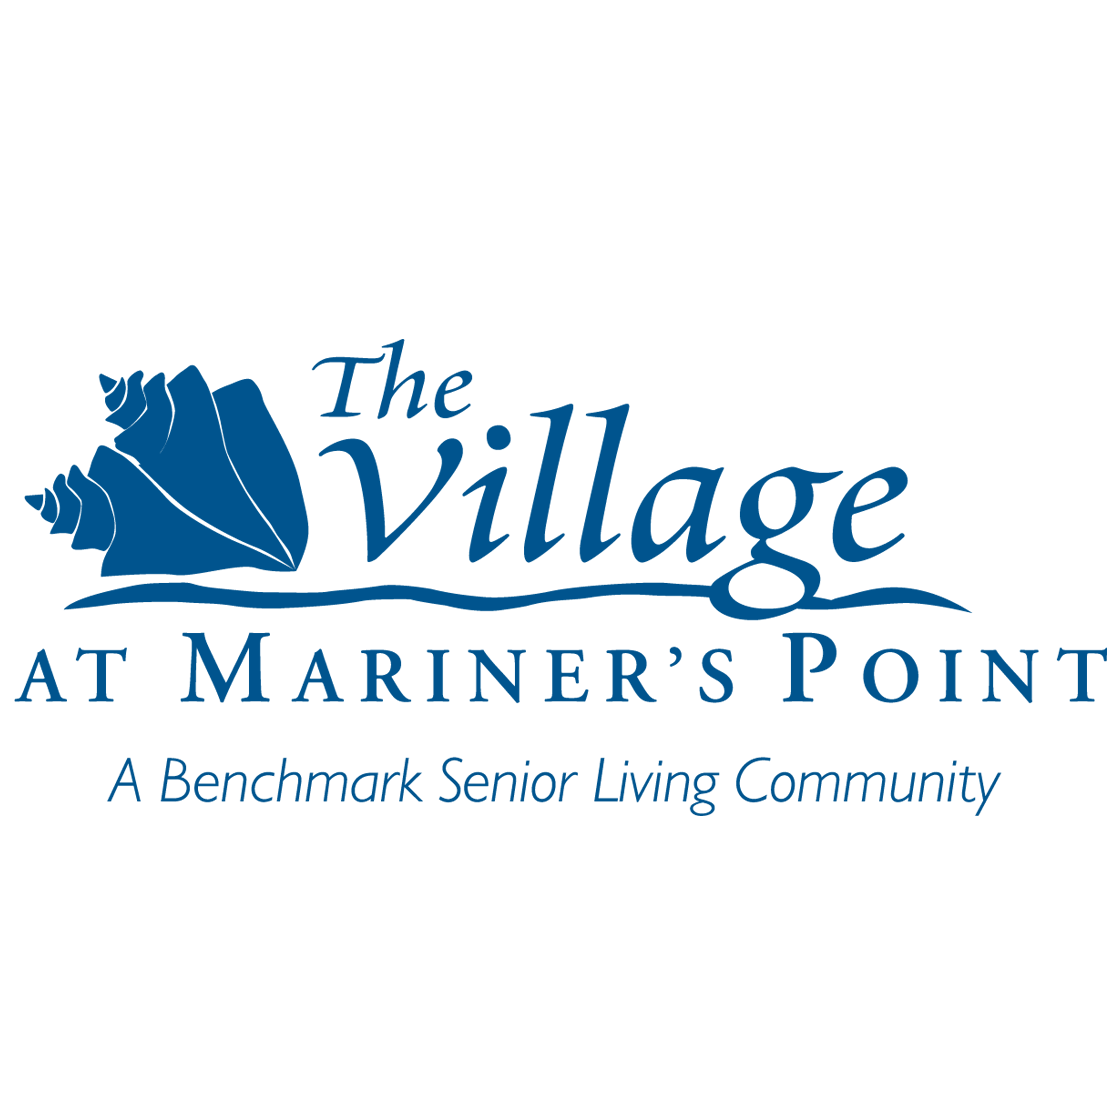 The Village at Mariner's Point